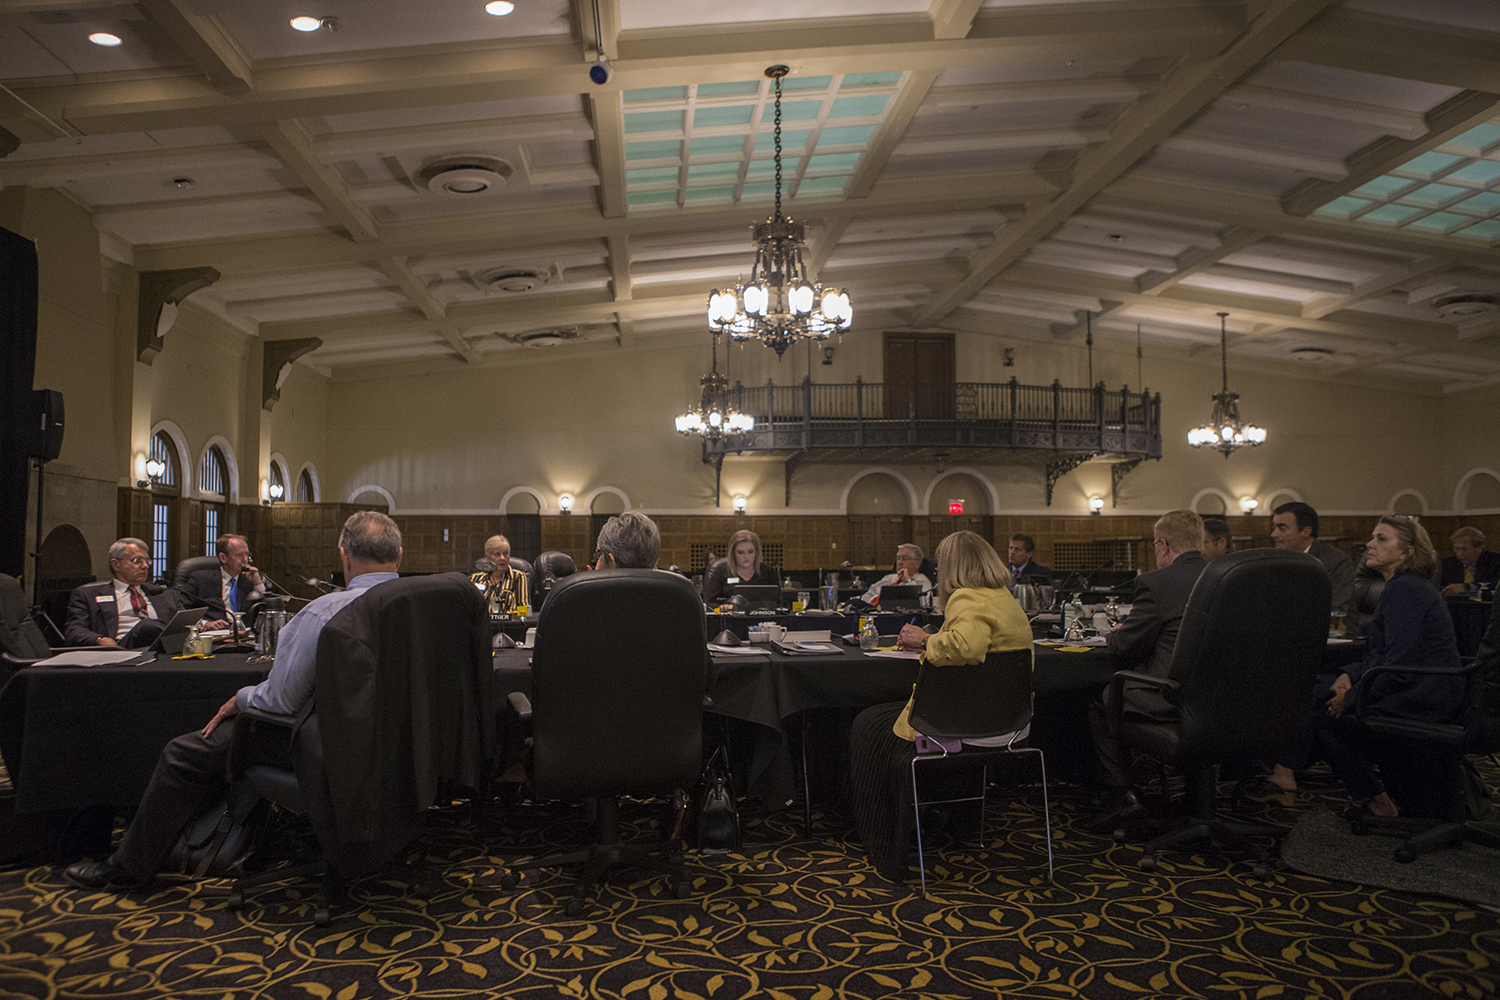 Board members listen during the Board of Regents meeting on Sept. 12, 2018 in the IMU Main Lounge. Regents members discussed remodeling various buildings and sights across various Iowa campuses.